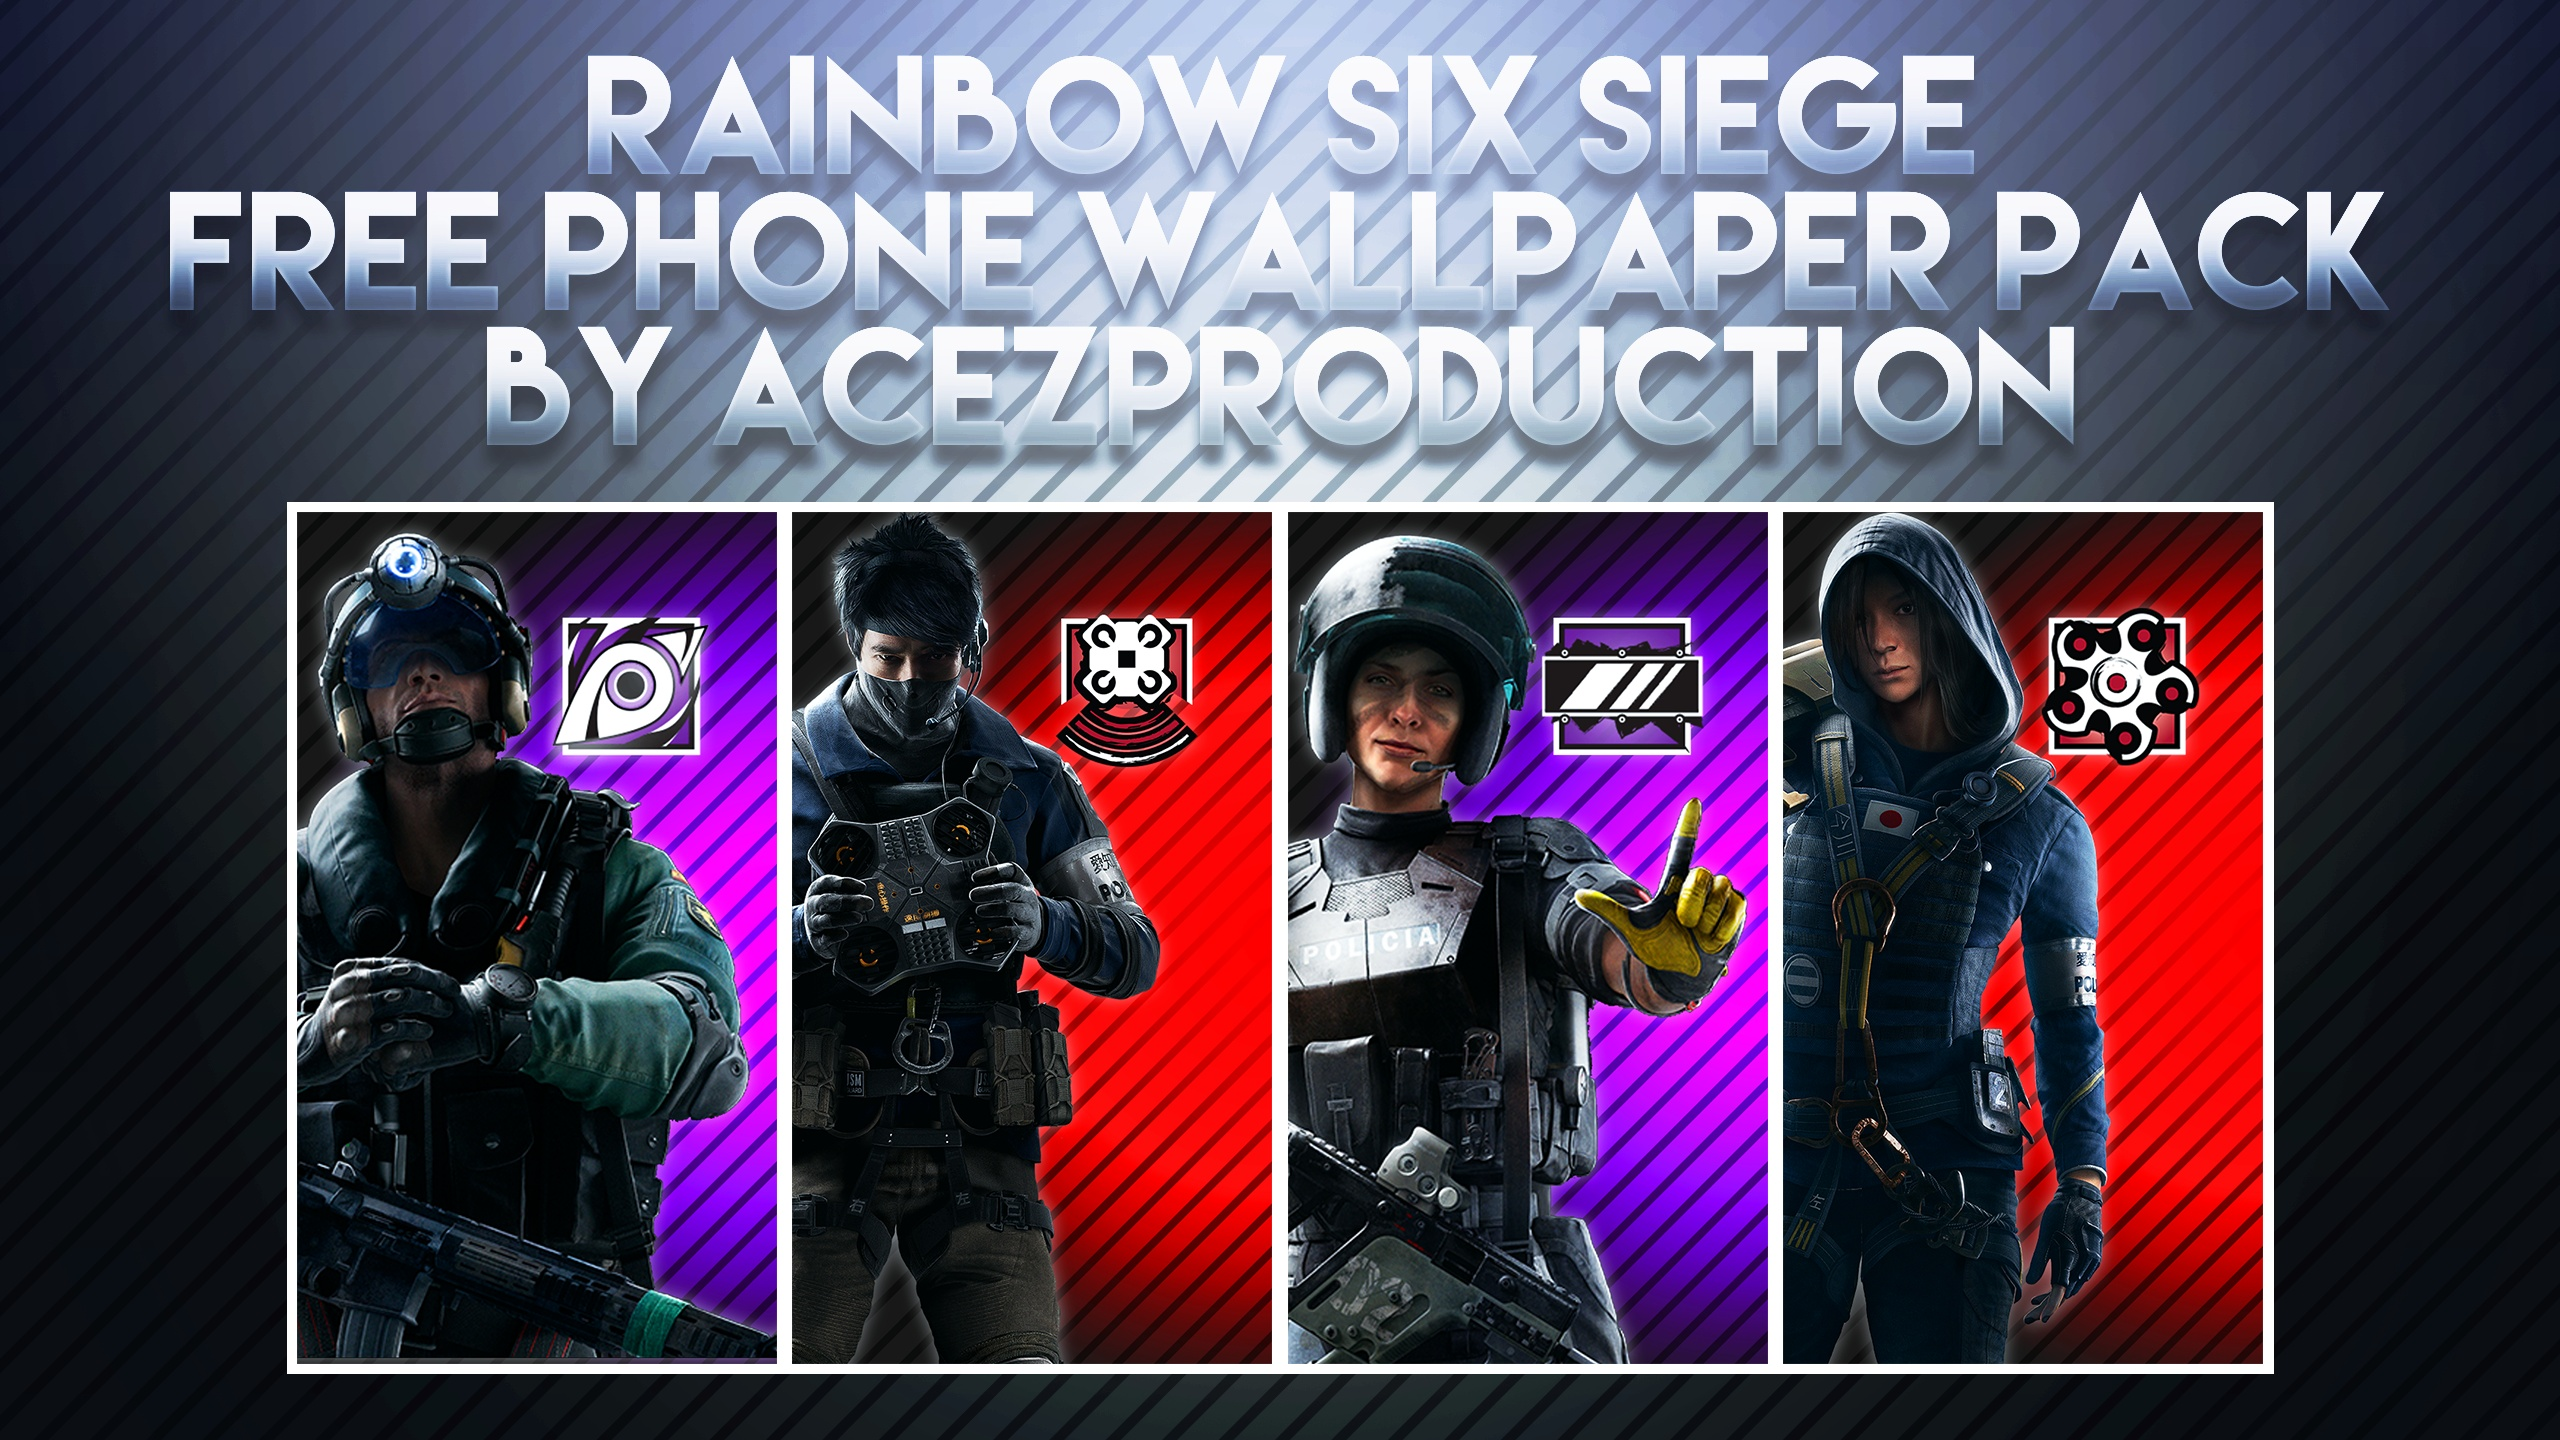 Rainbow Six Siege V2 Phone Wallpaper Pack Free Dow Acez